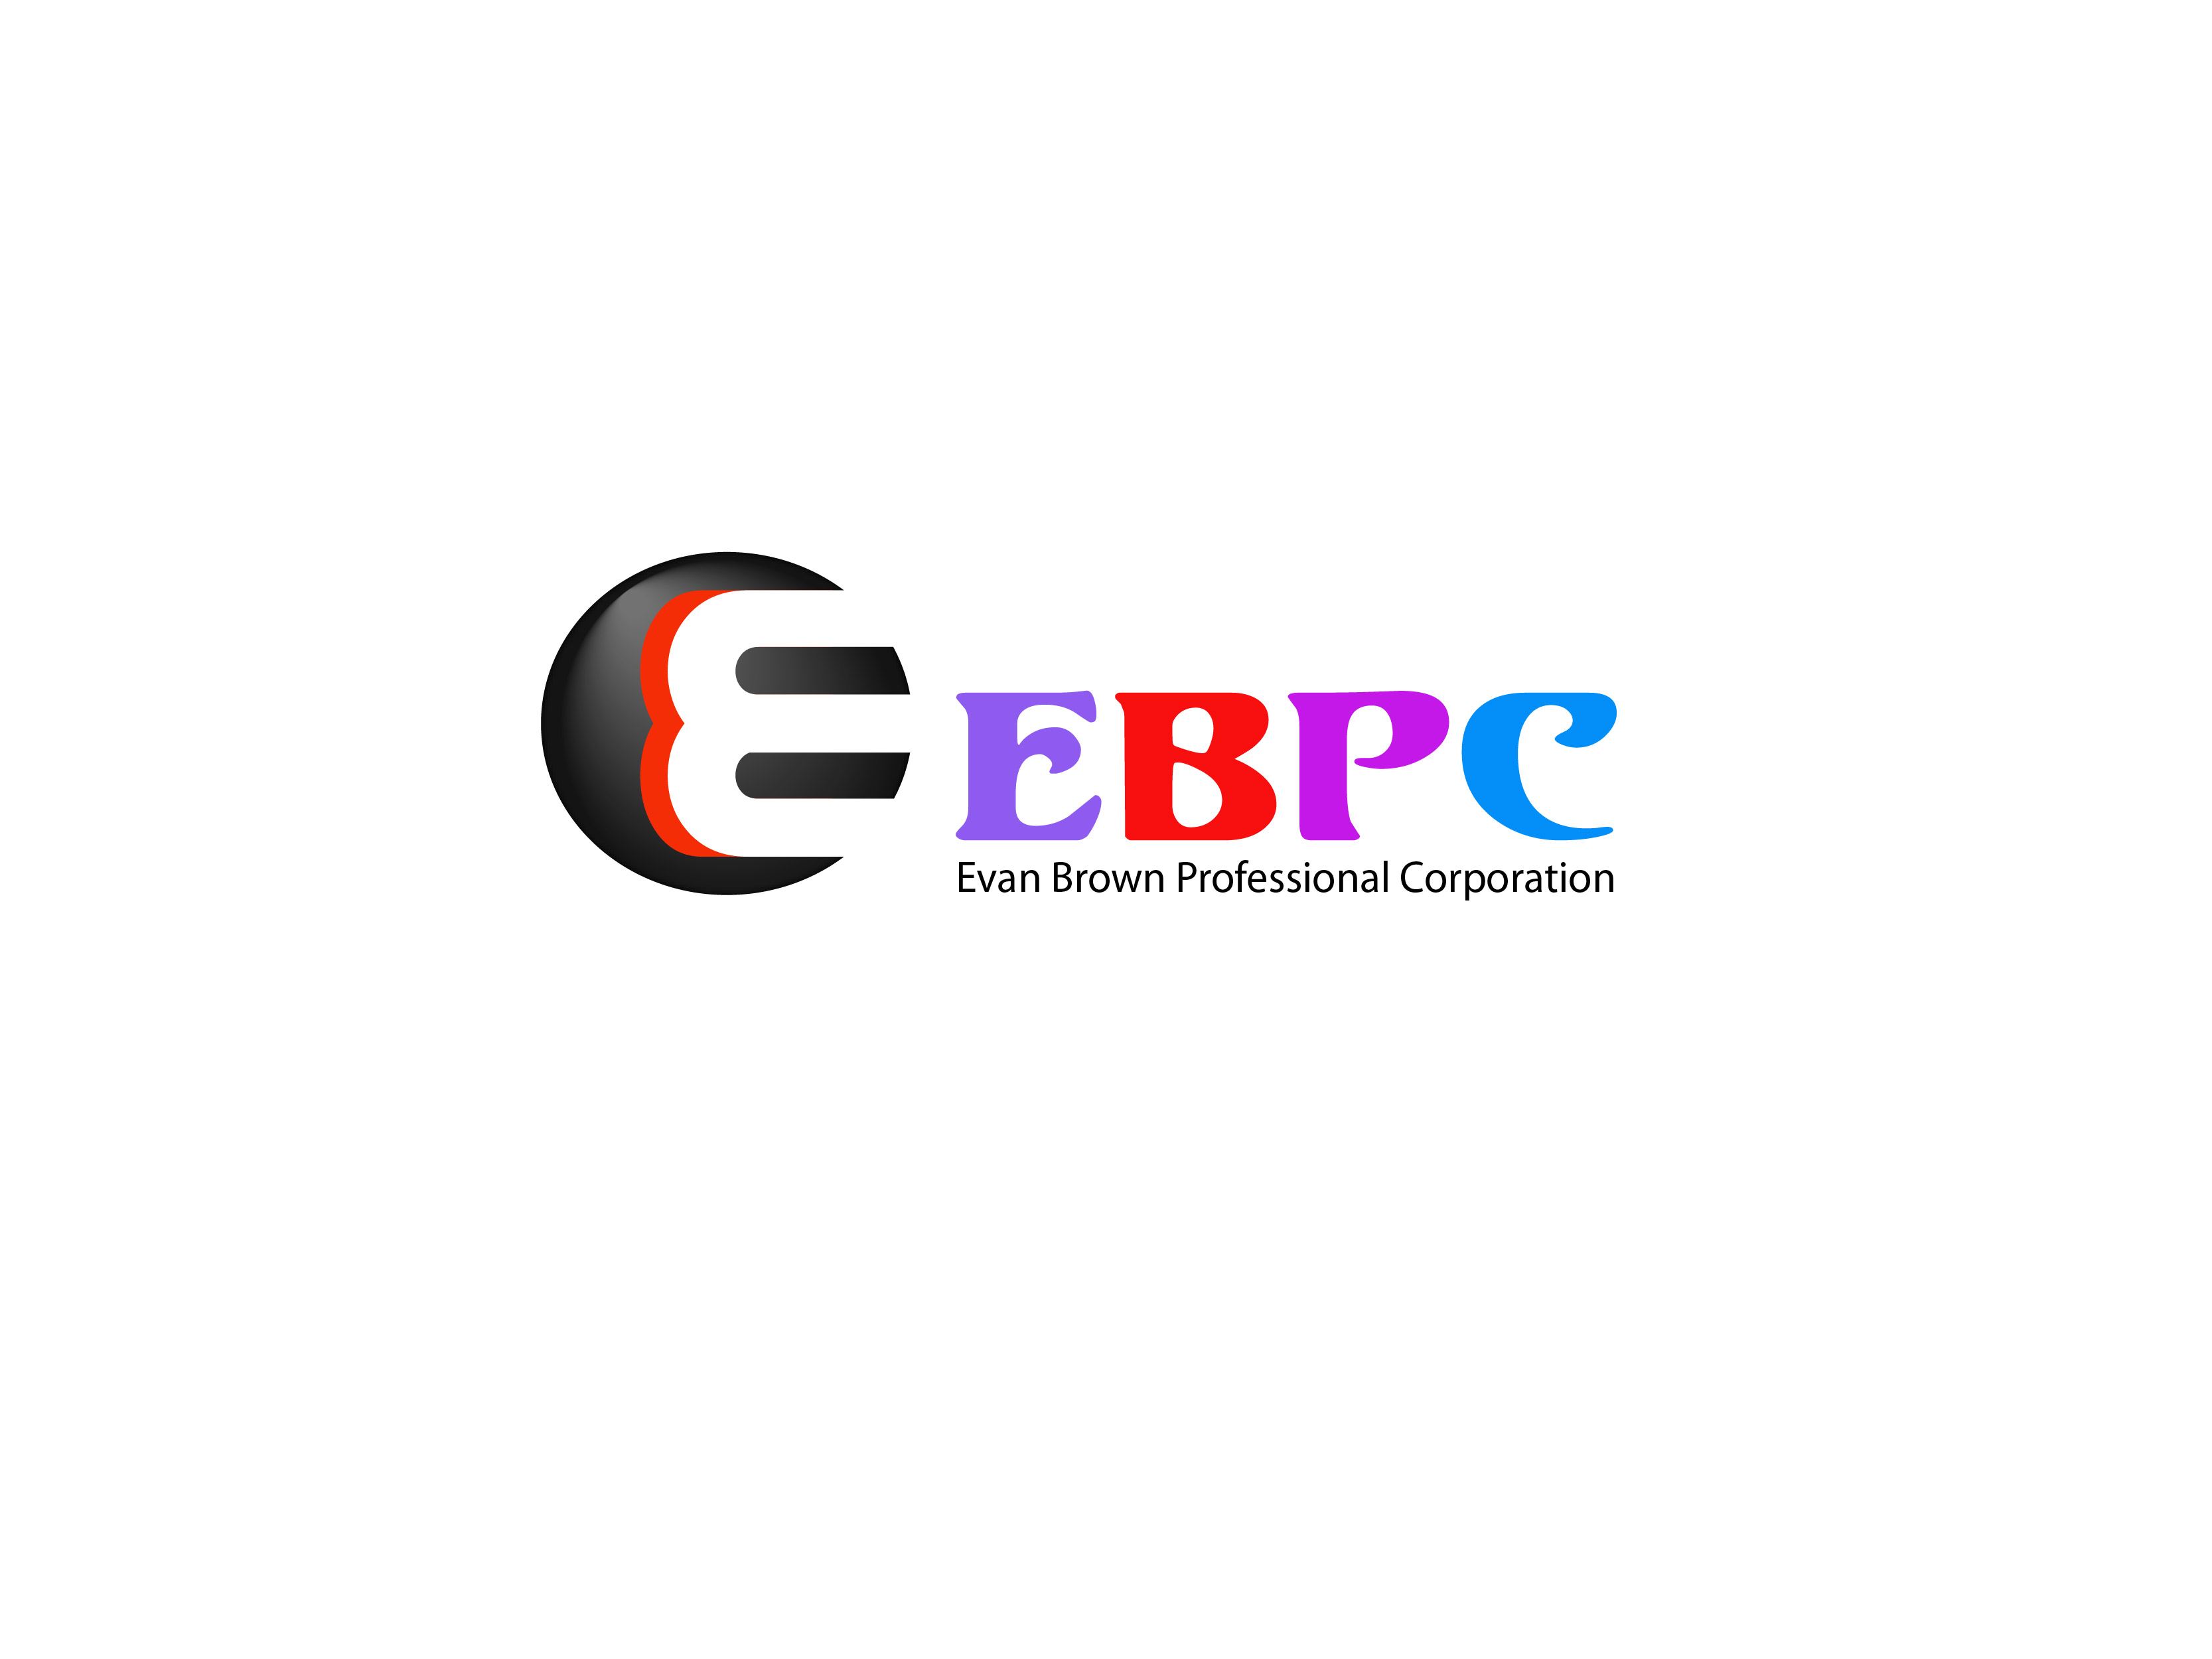 Logo Design by Kishor Patil - Entry No. 47 in the Logo Design Contest Inspiring Logo Design for Evan Brown Professional Corporation.